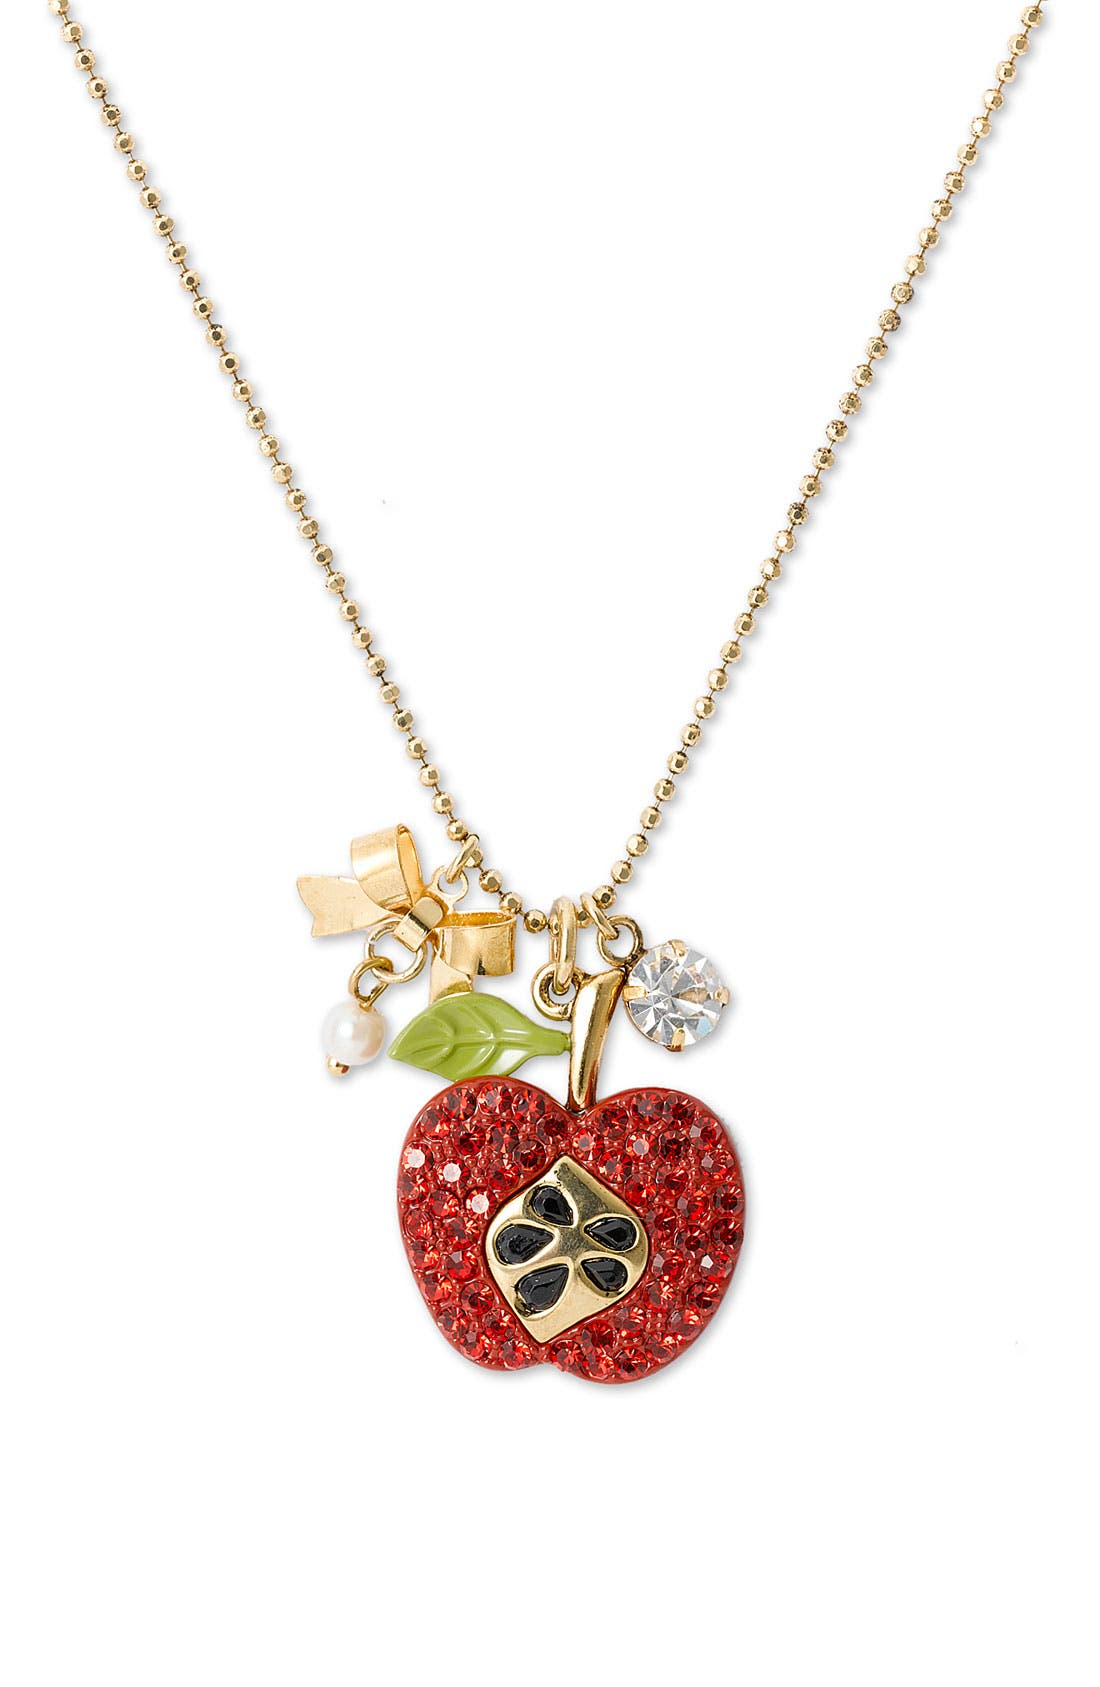 Main Image - Betsey Johnson 'Red Apple' Charm Necklace